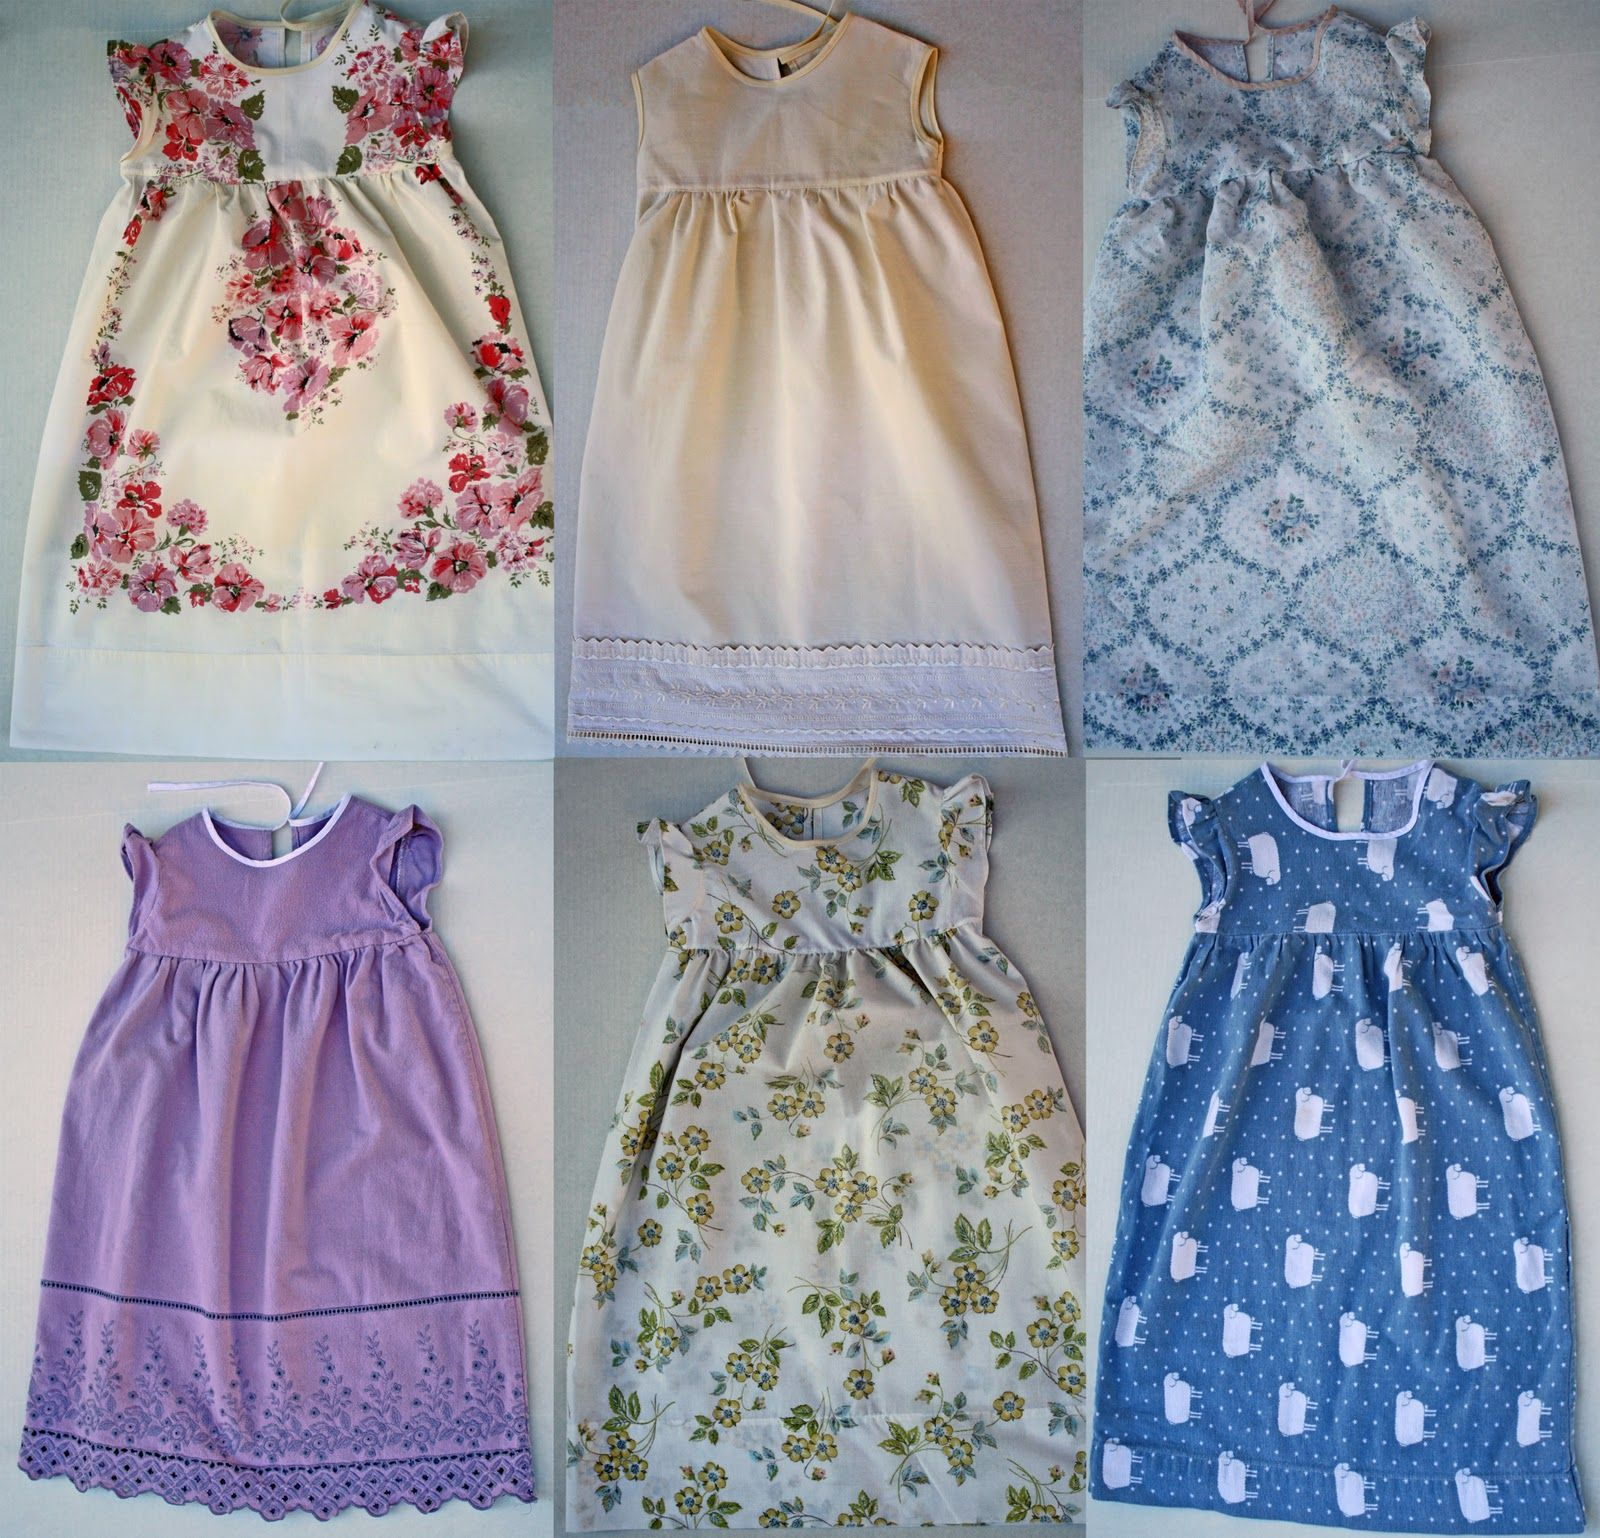 icandy handmade: (iCandy) plenty of pretty pillowcase nightgowns ...